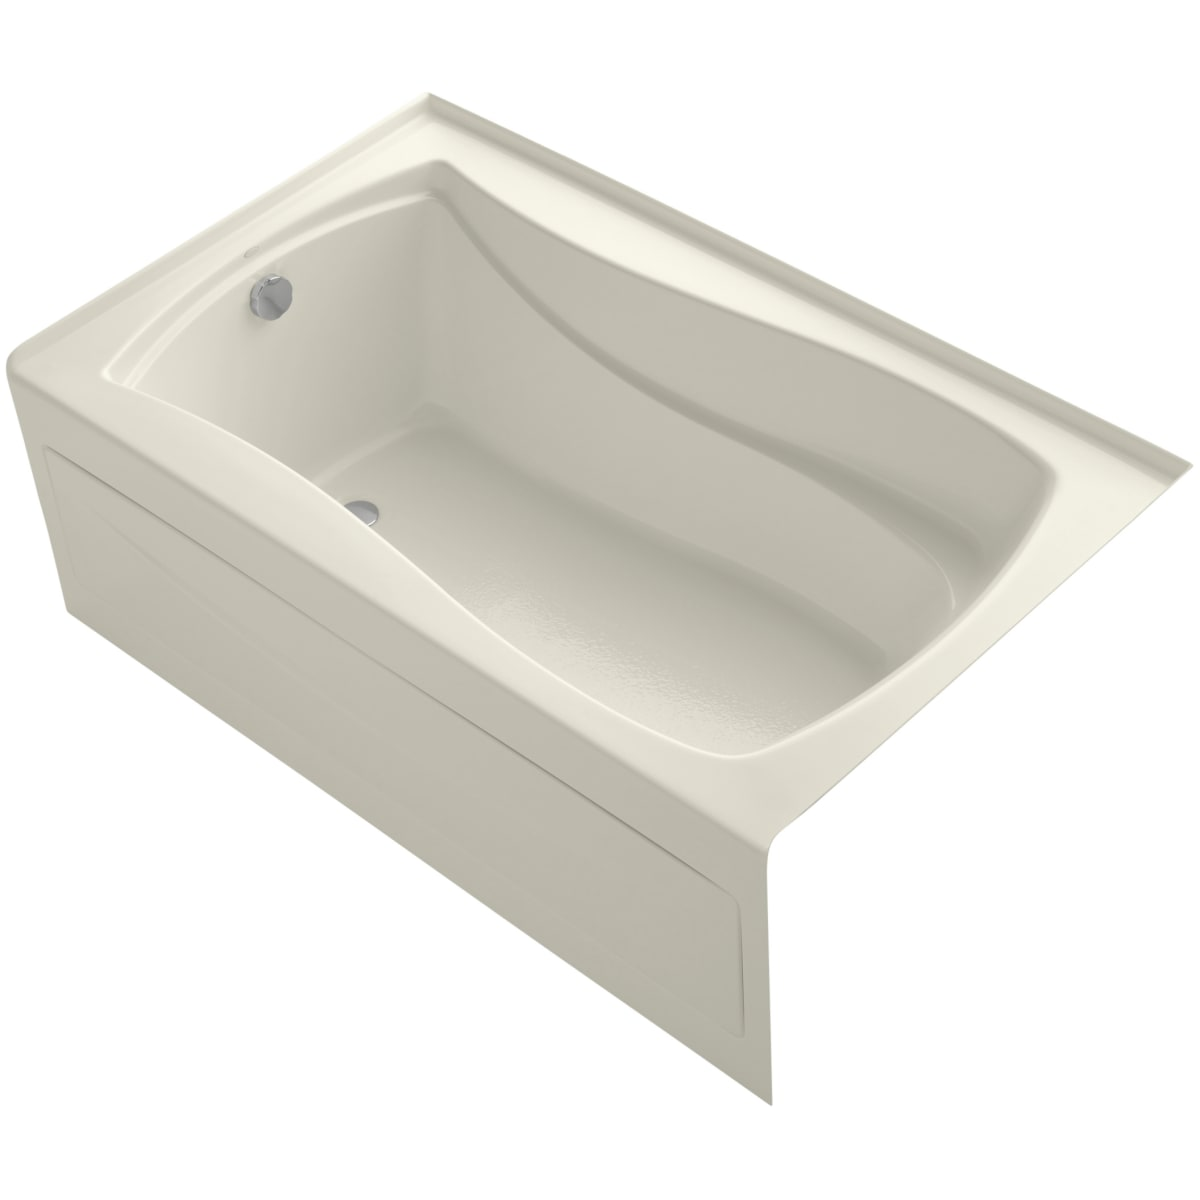 Kohler K 1242 La 96 Mariposa Collection 60 Build Com